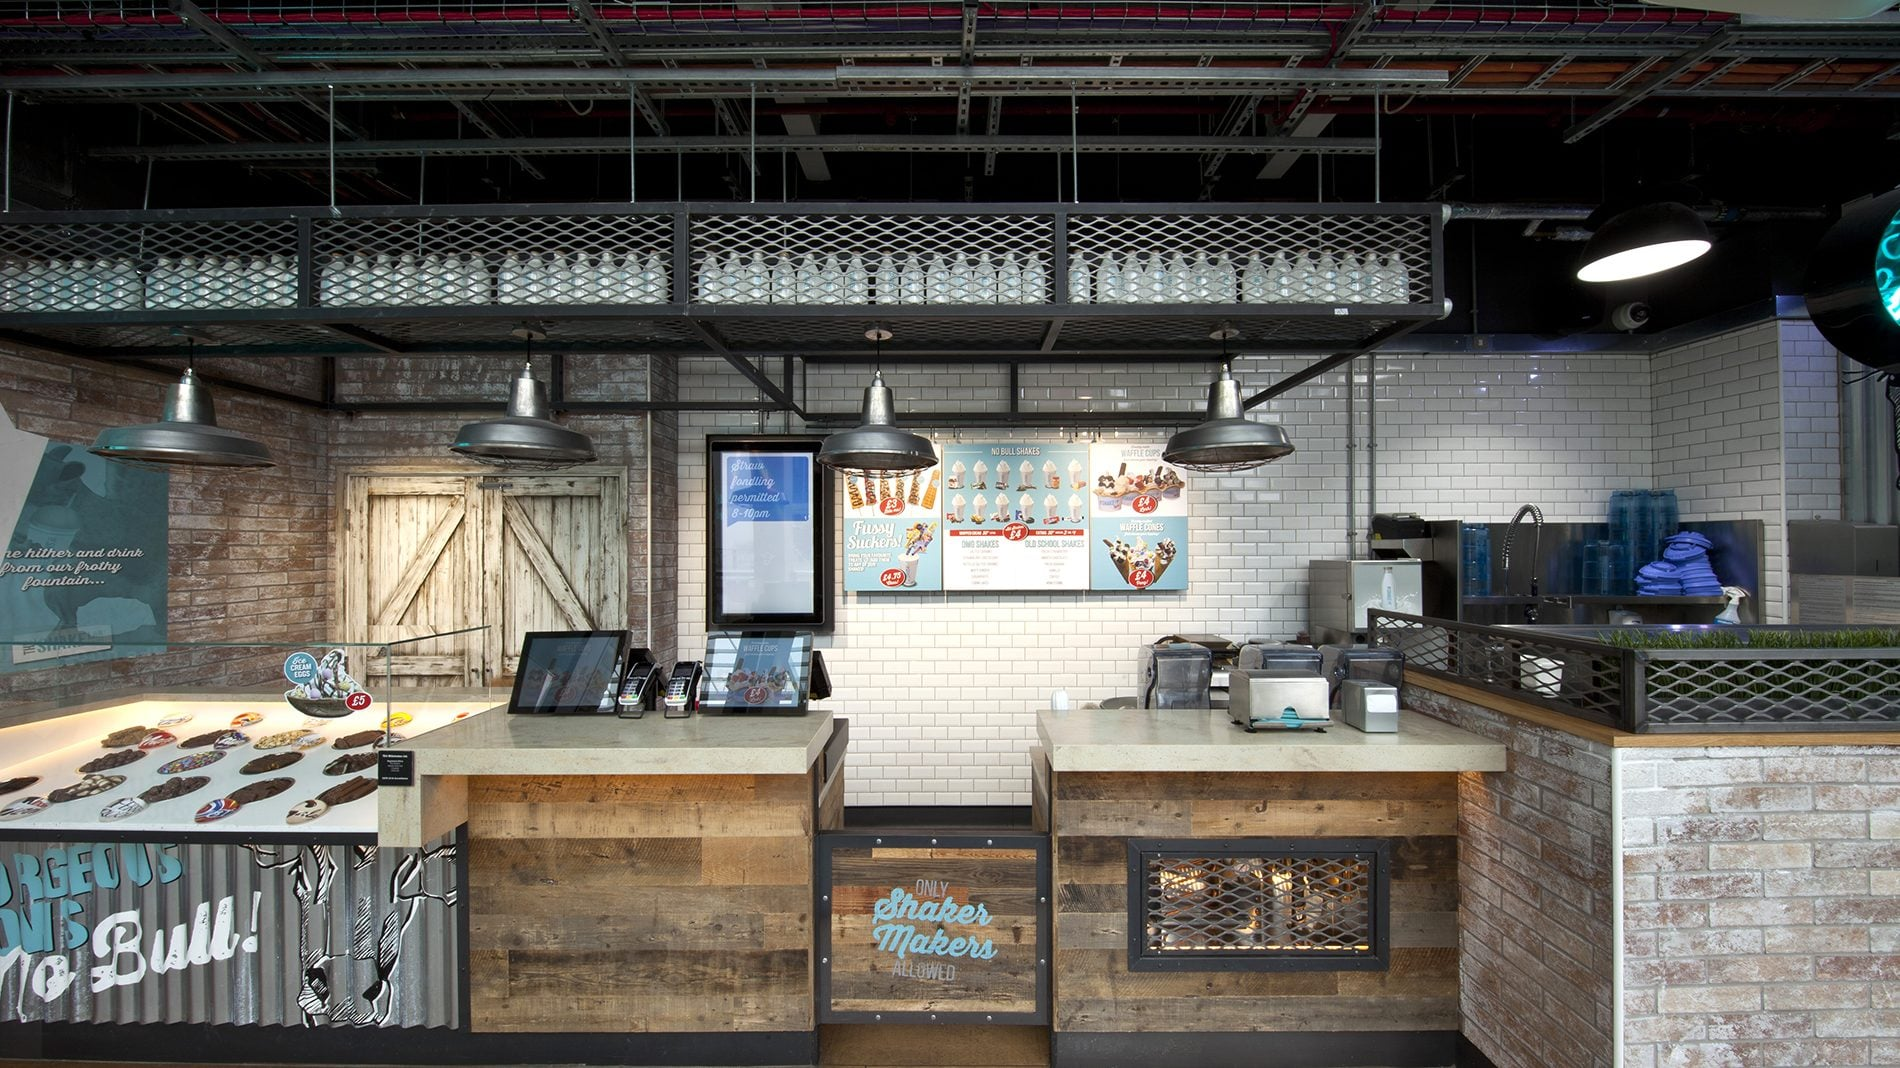 beyond london The Shake Lab retail design branding F&B